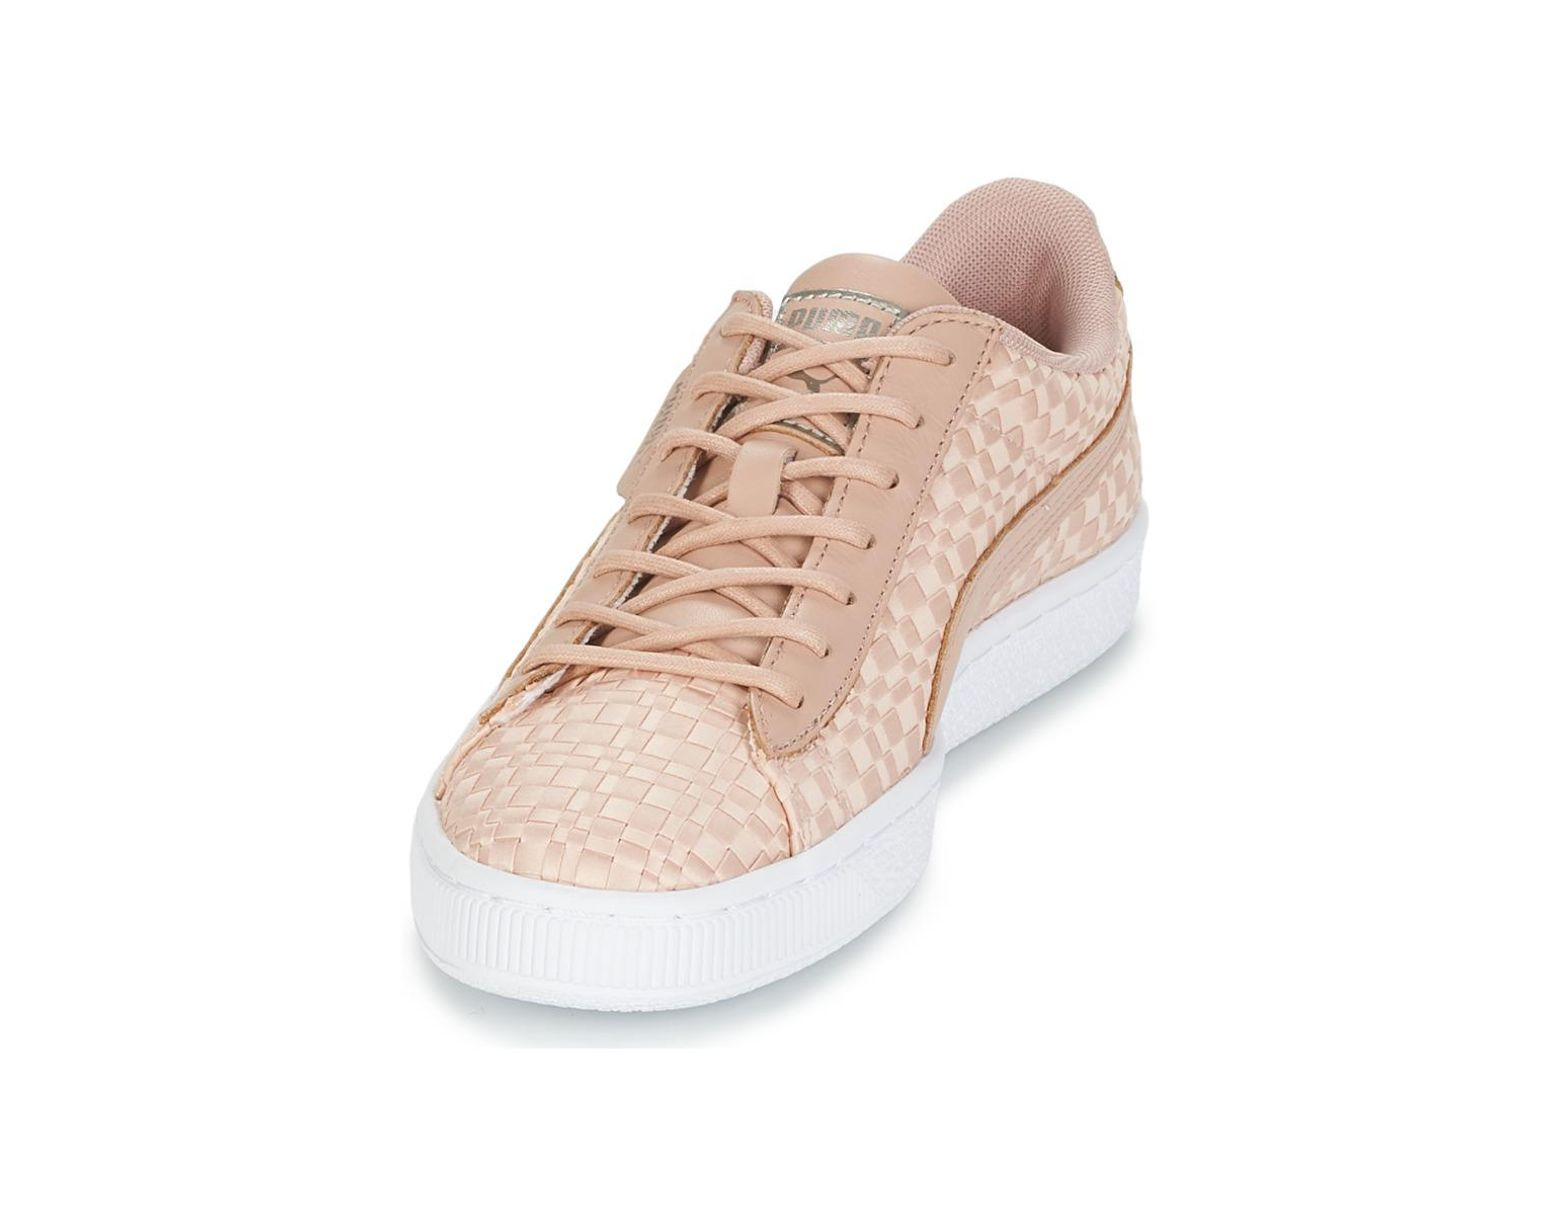 78af5e133e1 Basket Satin Ep Wn's Women's Shoes (trainers) In Pink